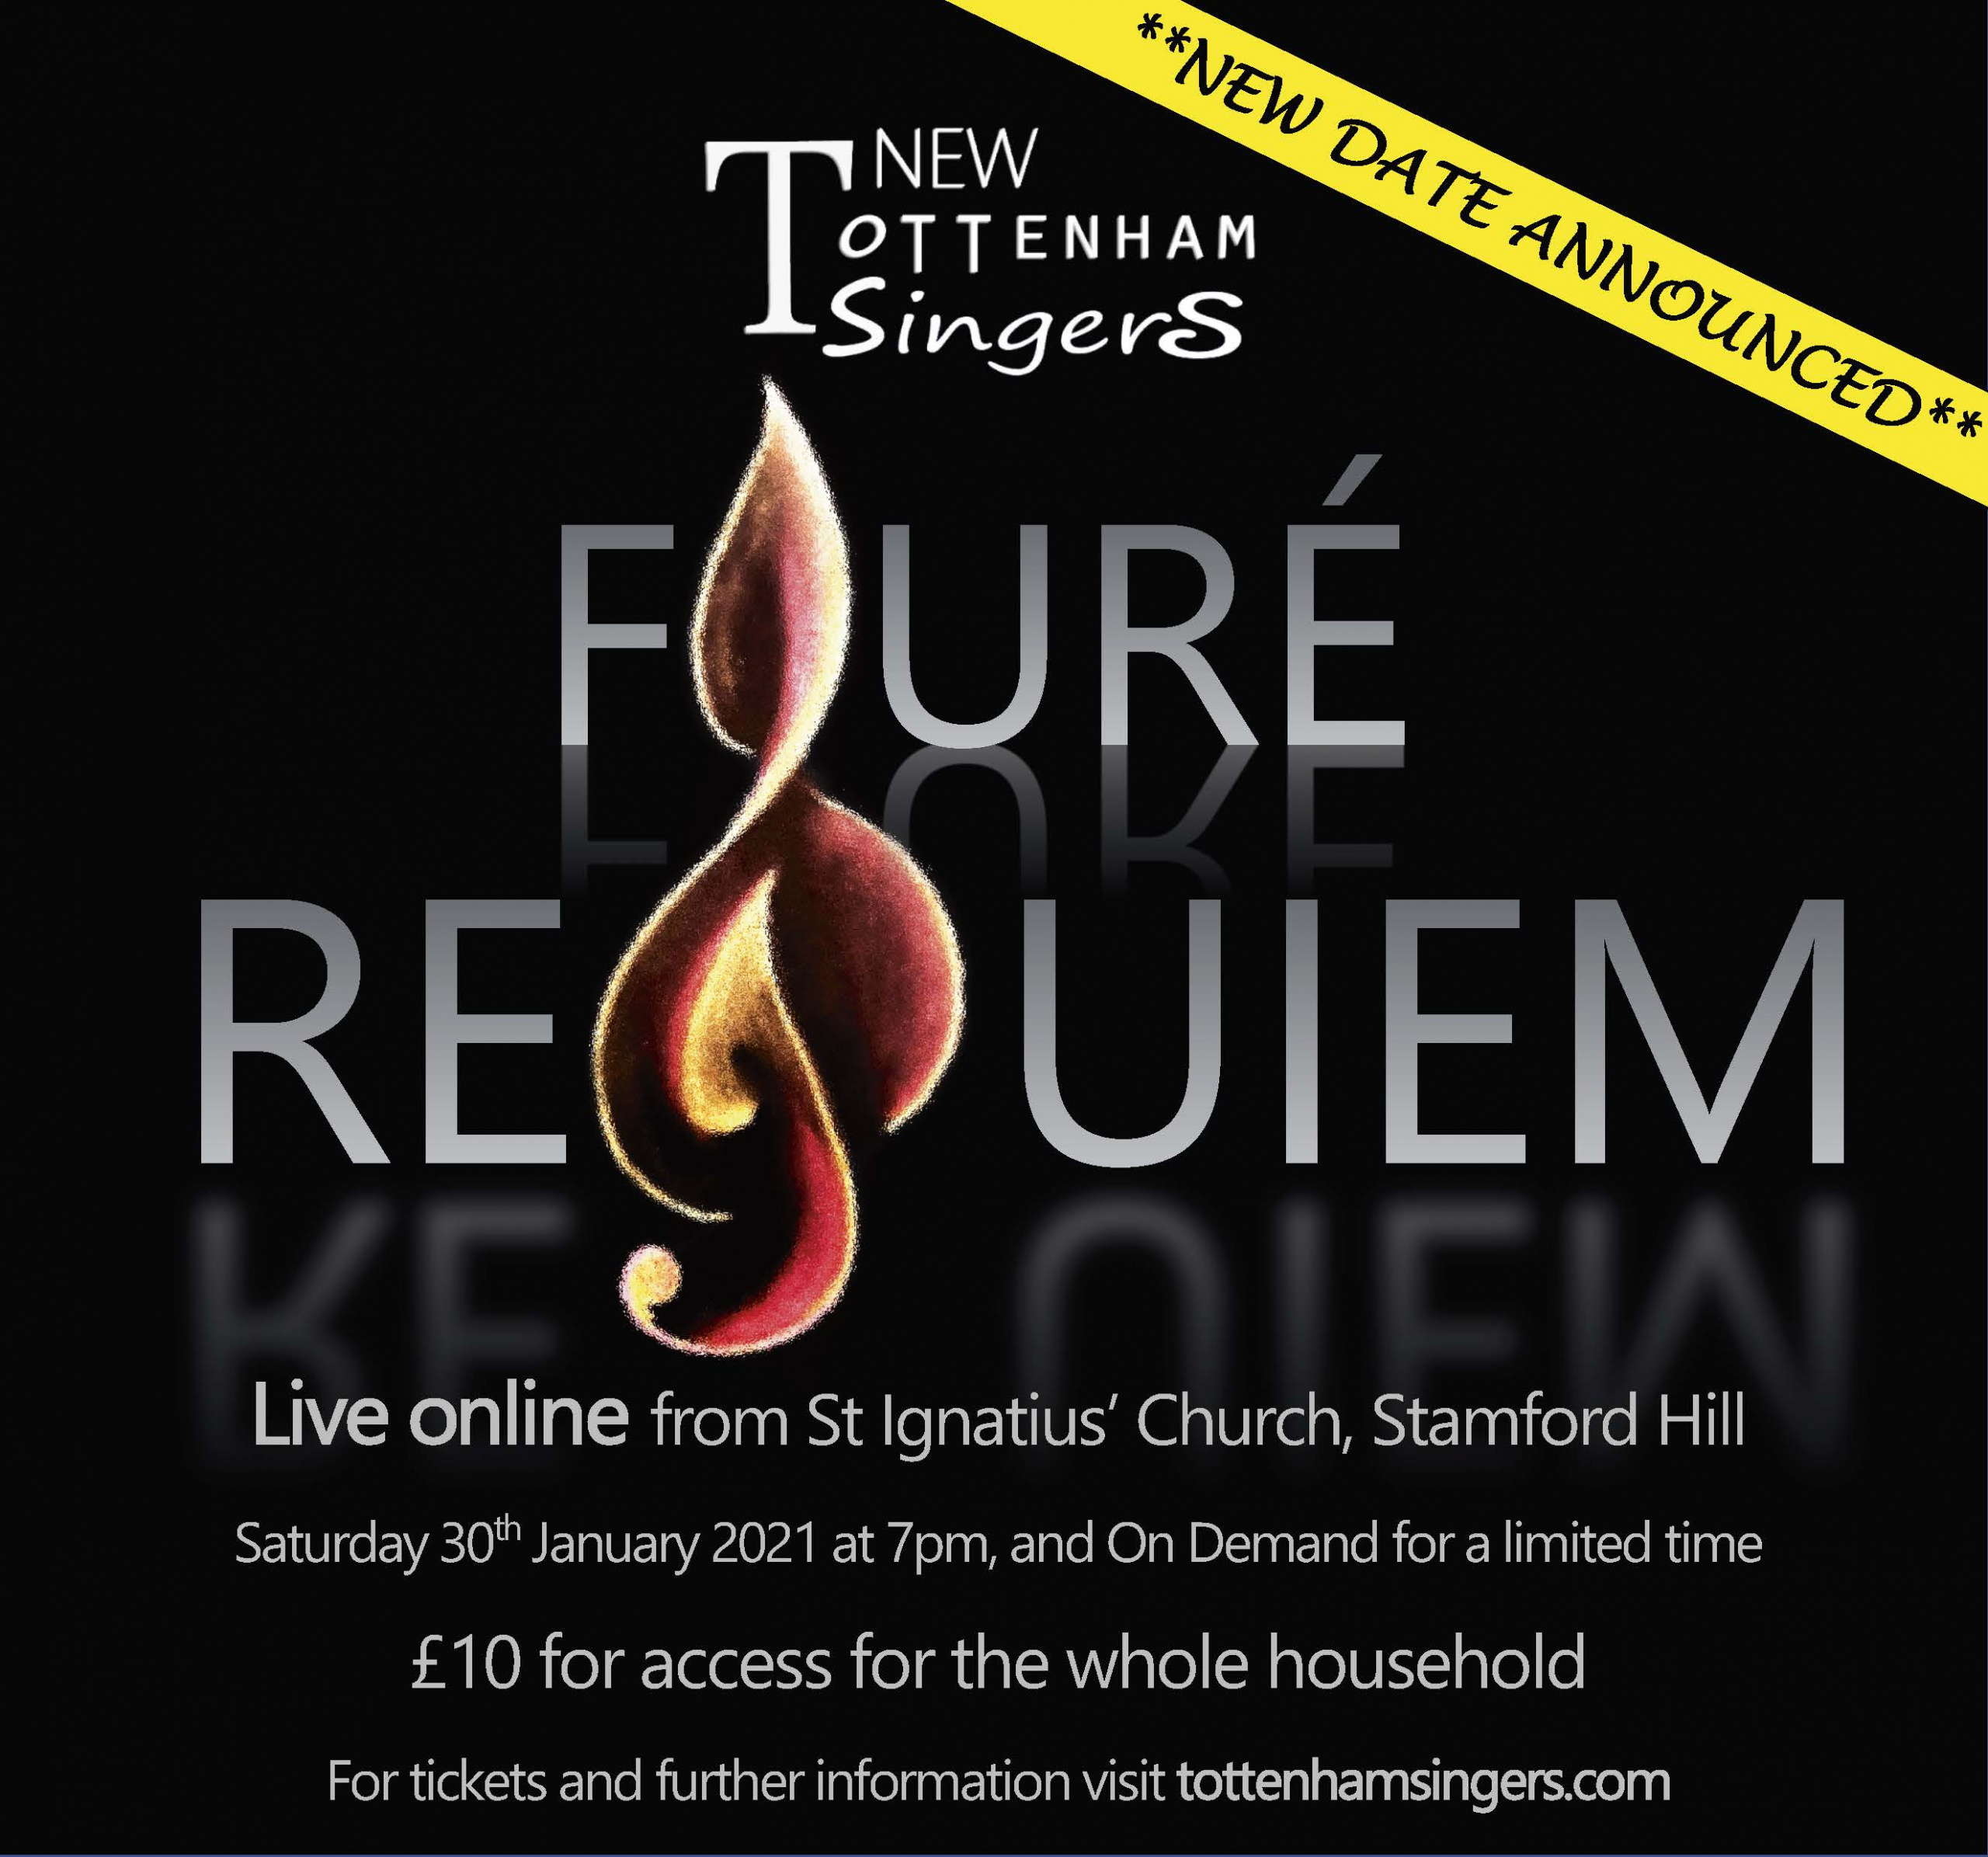 NTS presents the Faure Requiem live in concert. Live online from St Ignatius' Church, Stamford Hill Saturday 30th January 2021 at 7pm, and On Demand for a limited time £10 for access for the whole household For tickets and further information visit tottenhamsingers.com